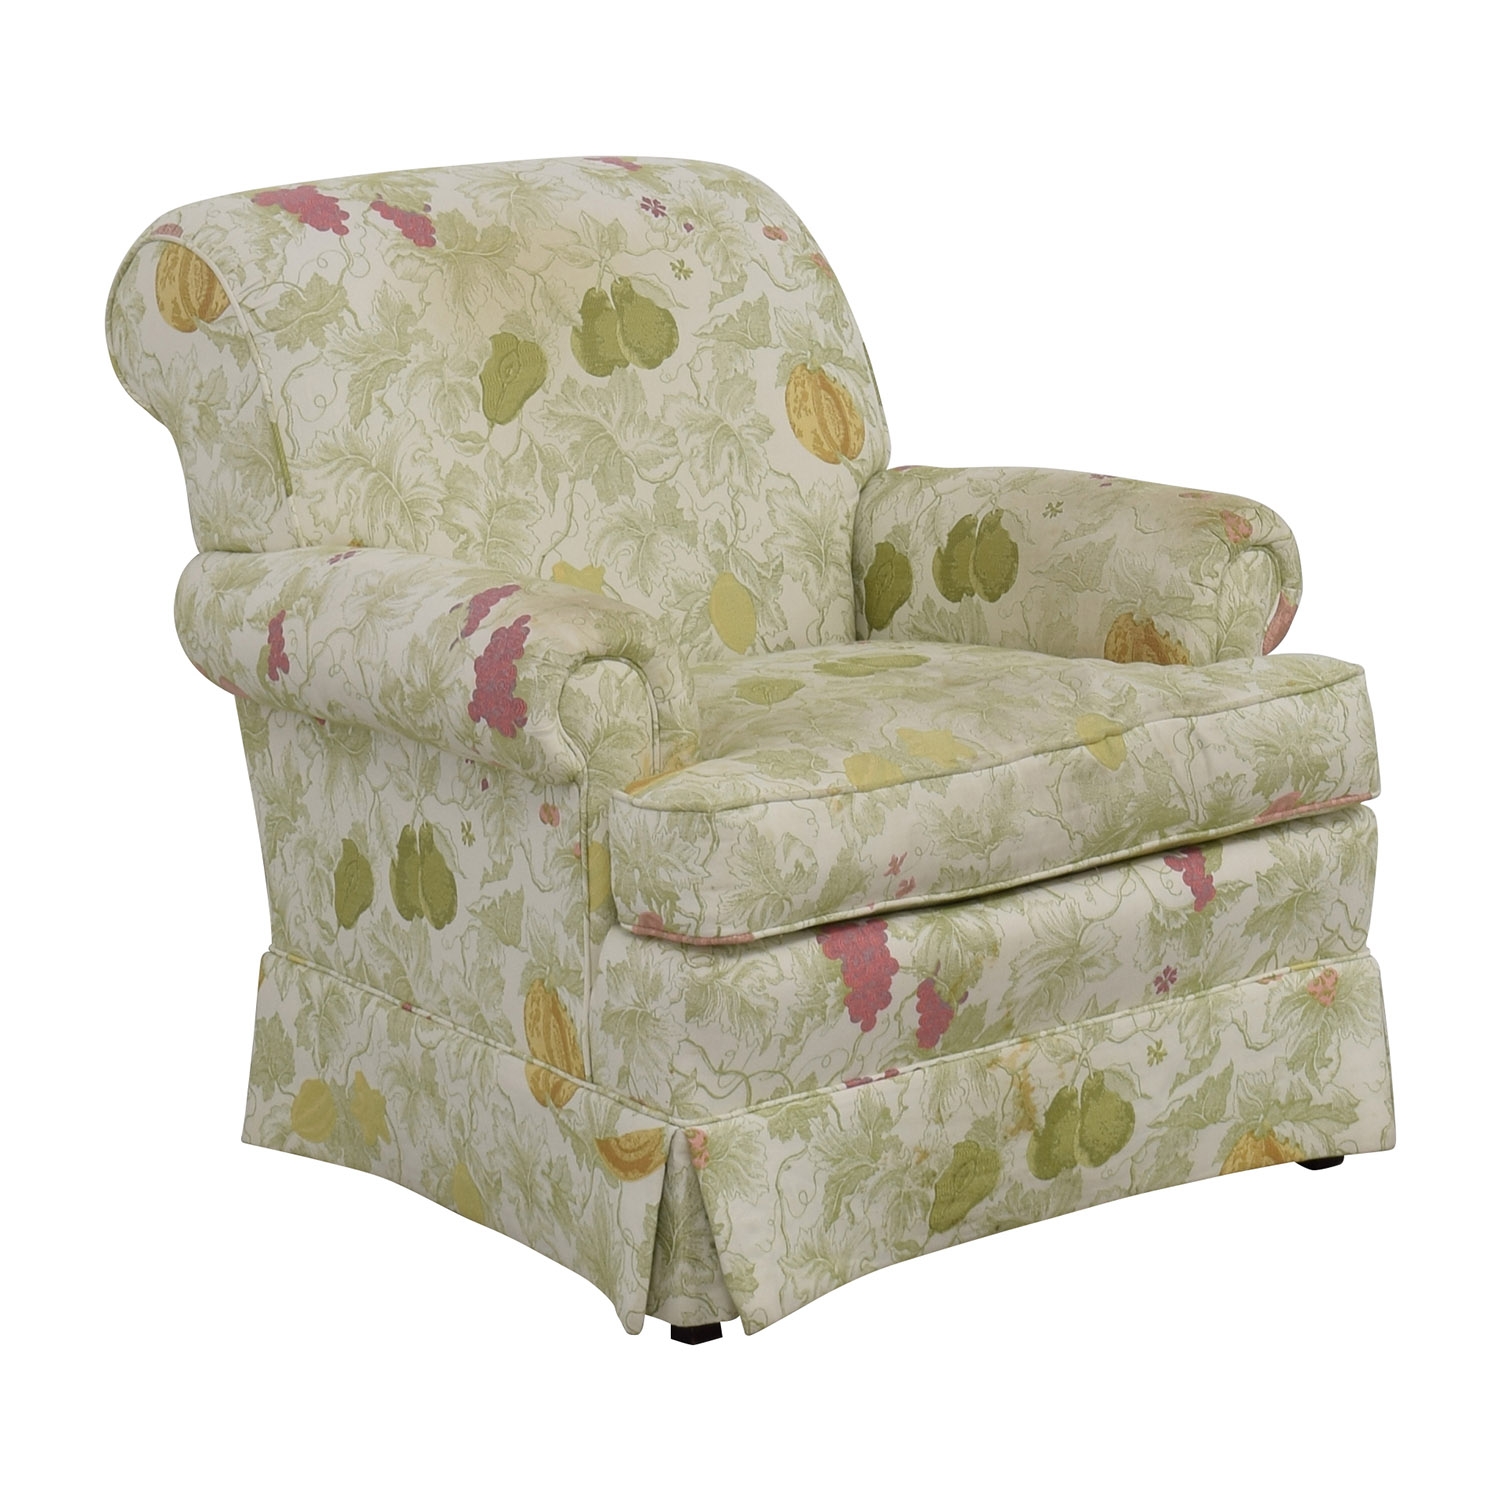 Patterned Chairs 80 Off Sherrill Sherrill Fruit Patterned Accent Chair